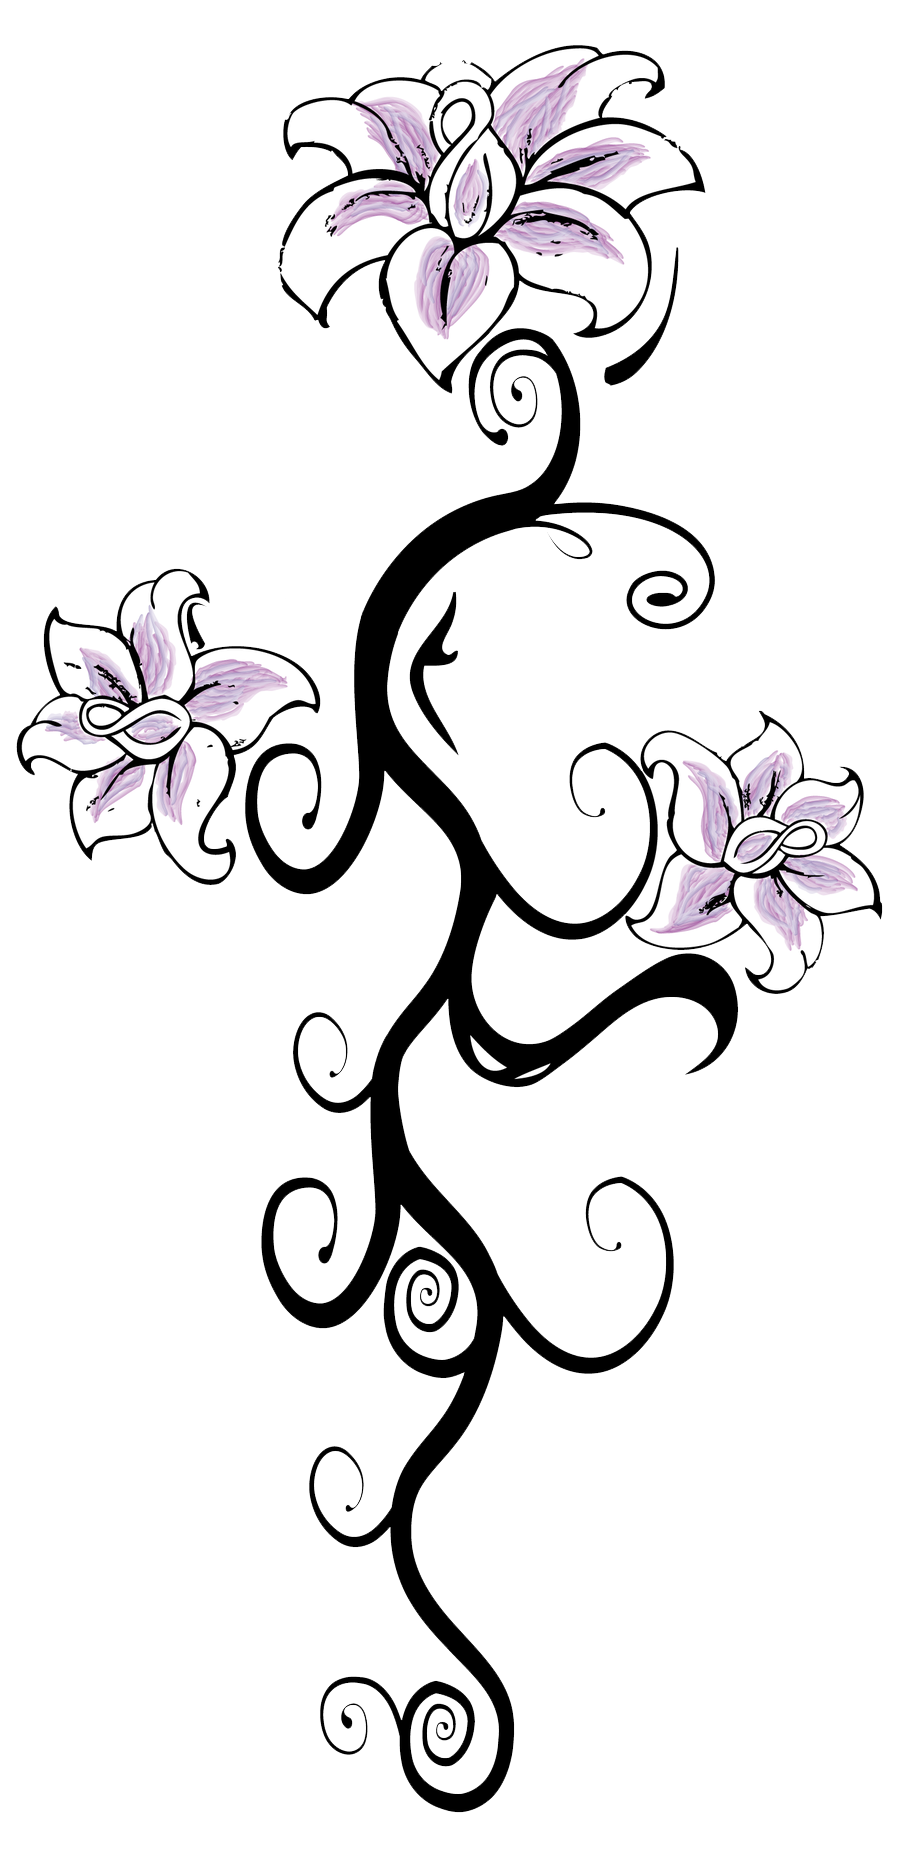 Flower Tattoo Transparent PNG Image